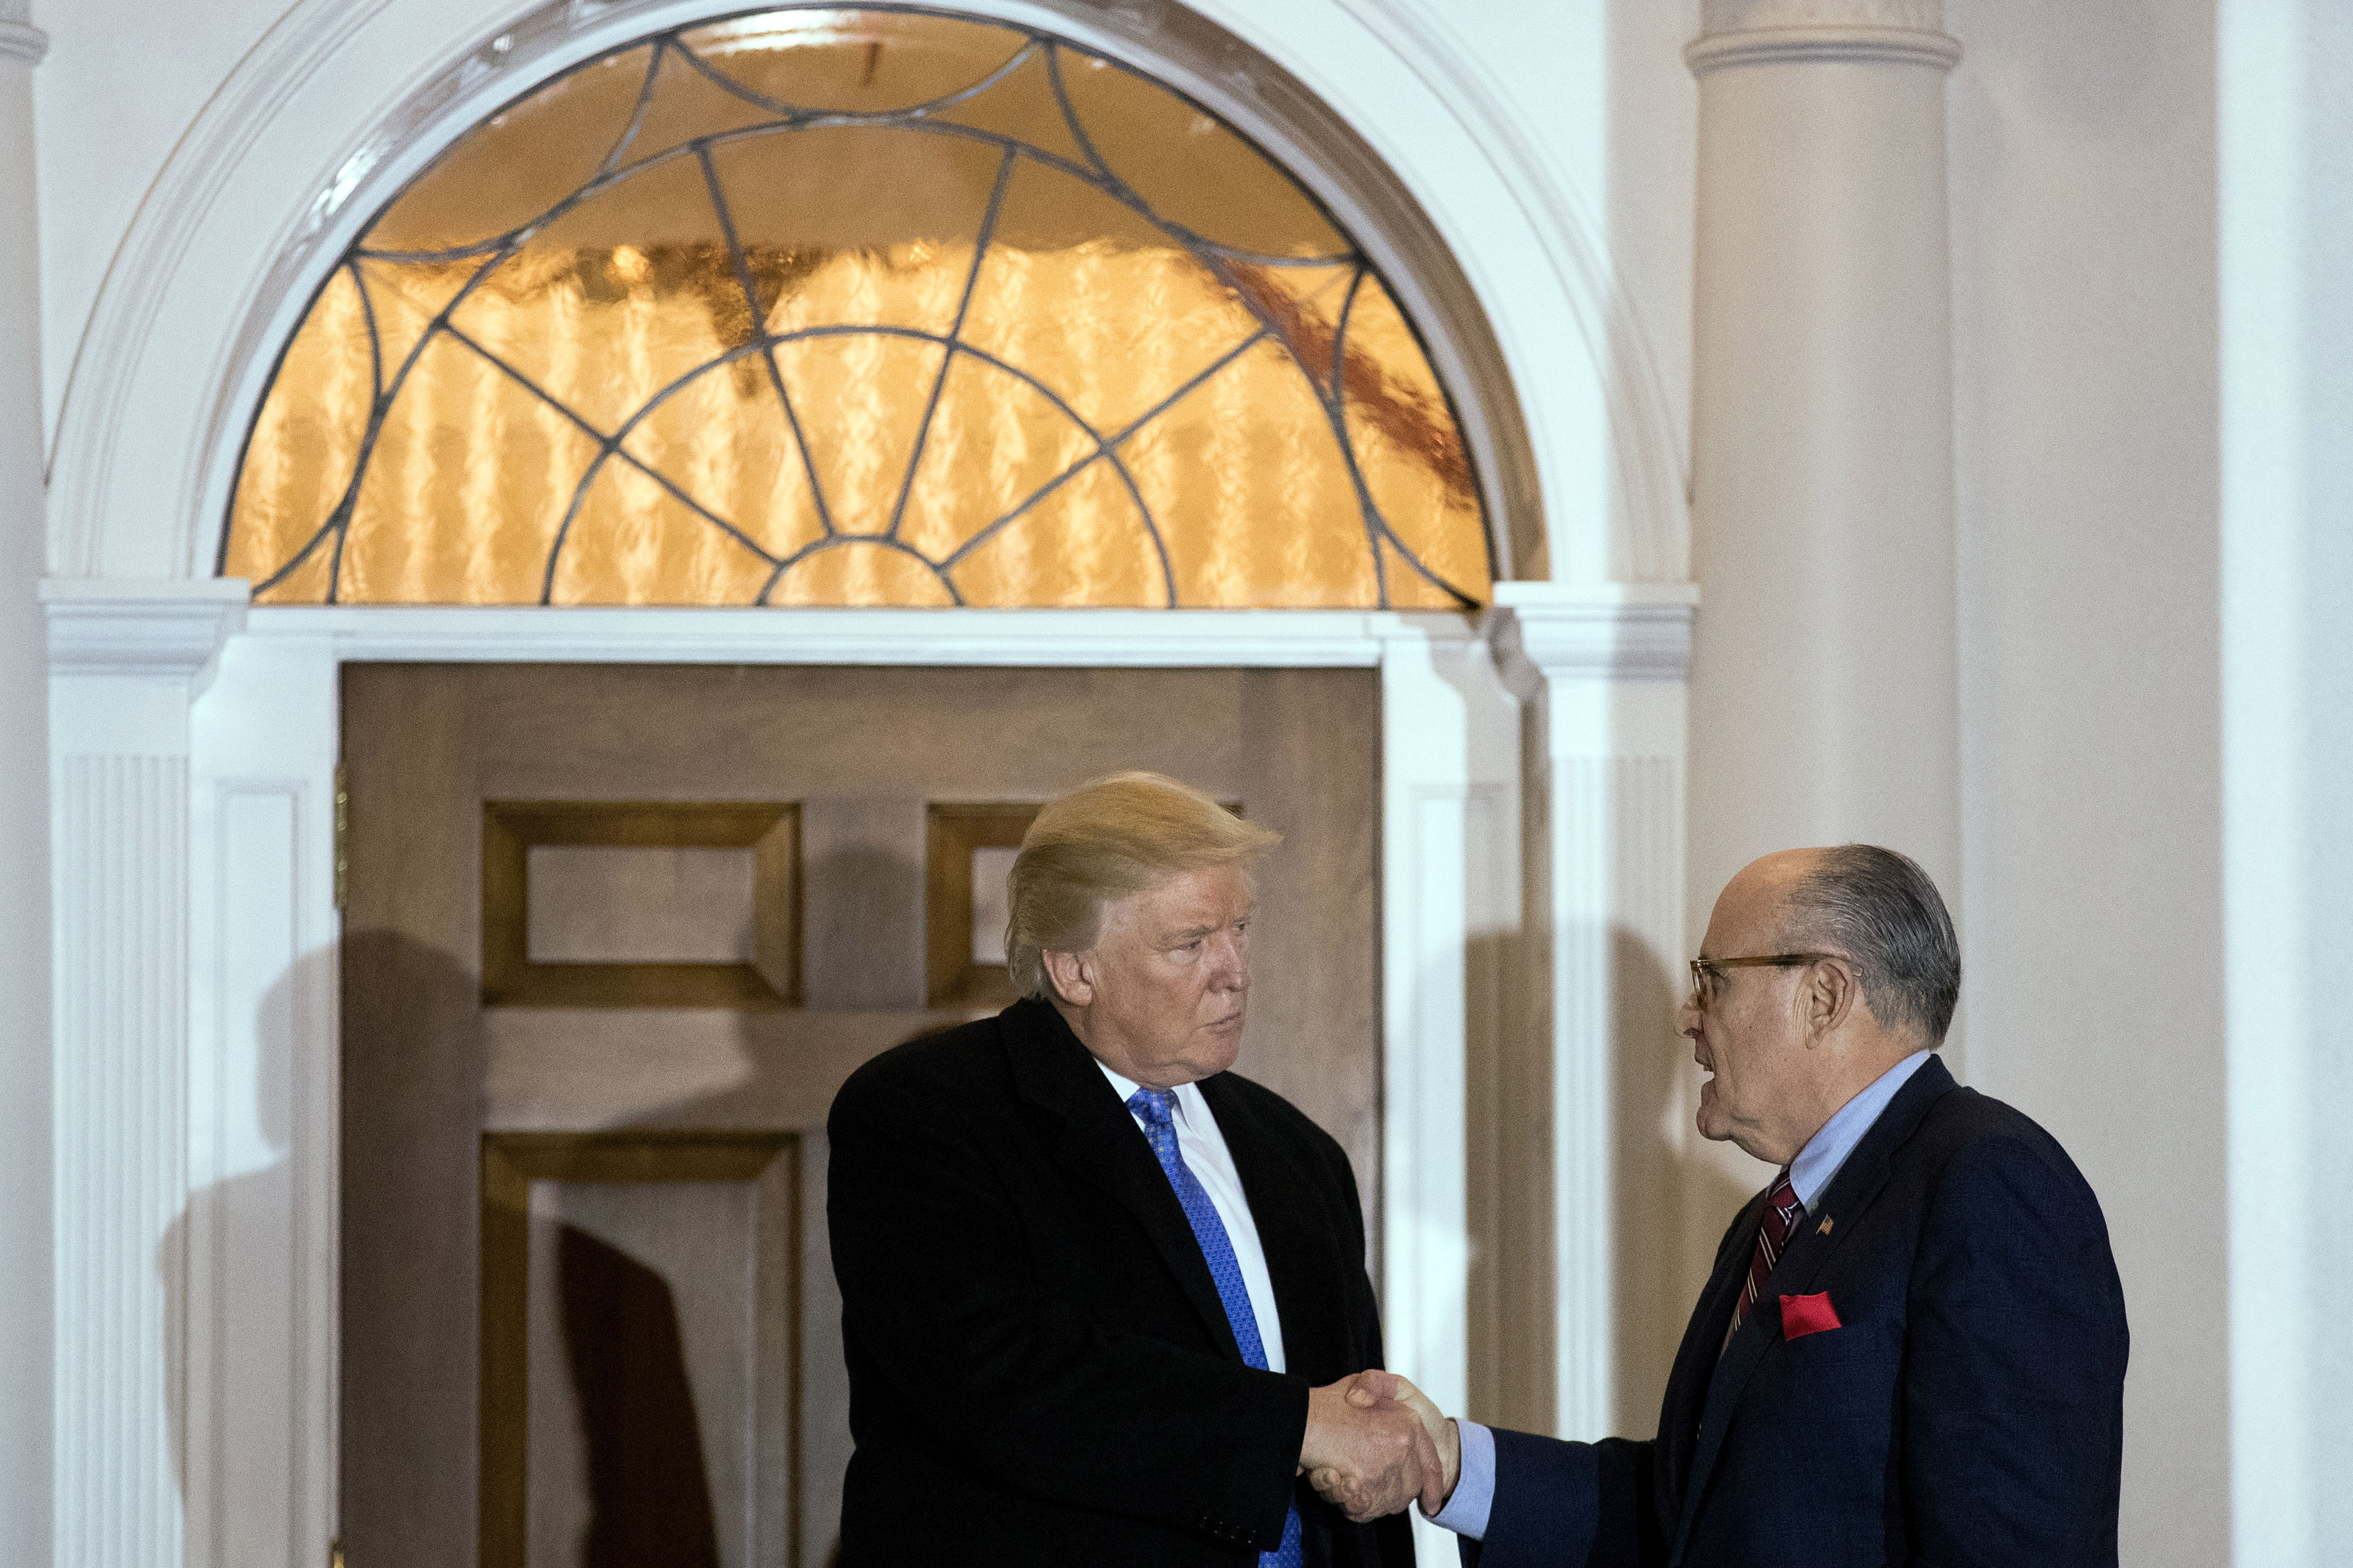 BEDMINSTER TOWNSHIP, NJ - NOVEMBER 20: (L to R) President-elect Donald Trump and former New York City mayor Rudy Giuliani shake hands following their meeting at Trump International Golf Club, November 20, 2016 in Bedminster Township, New Jersey. Trump and his transition team are in the process of filling cabinet and other high level positions for the new administration. (Photo by Drew Angerer/Getty Images)